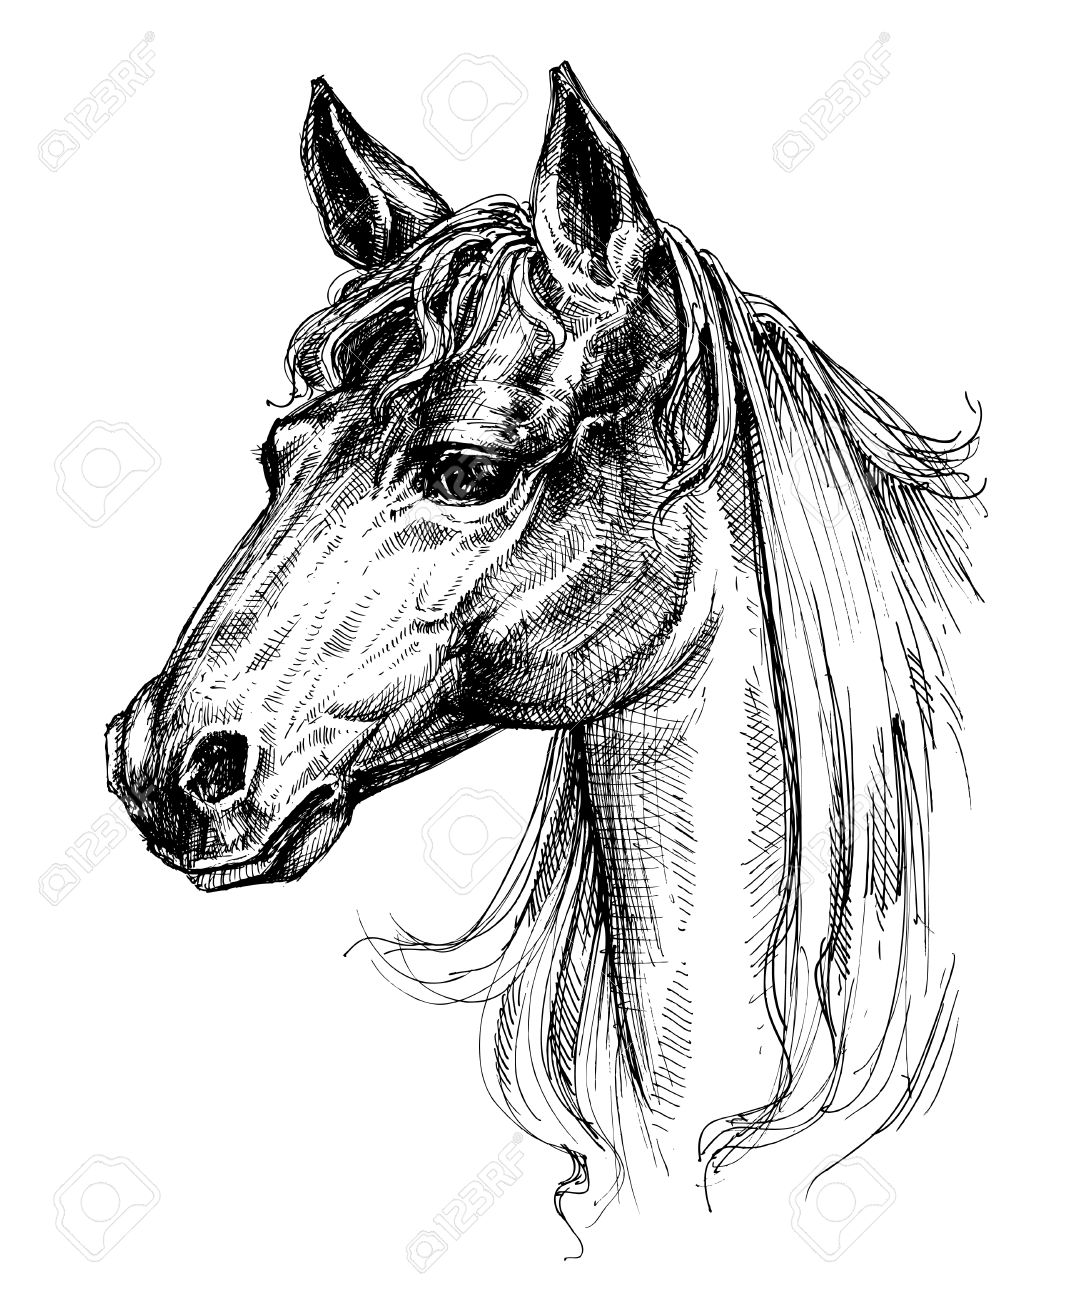 Horse Head Drawing Royalty Free Cliparts Vectors And Stock Illustration Image 51327300